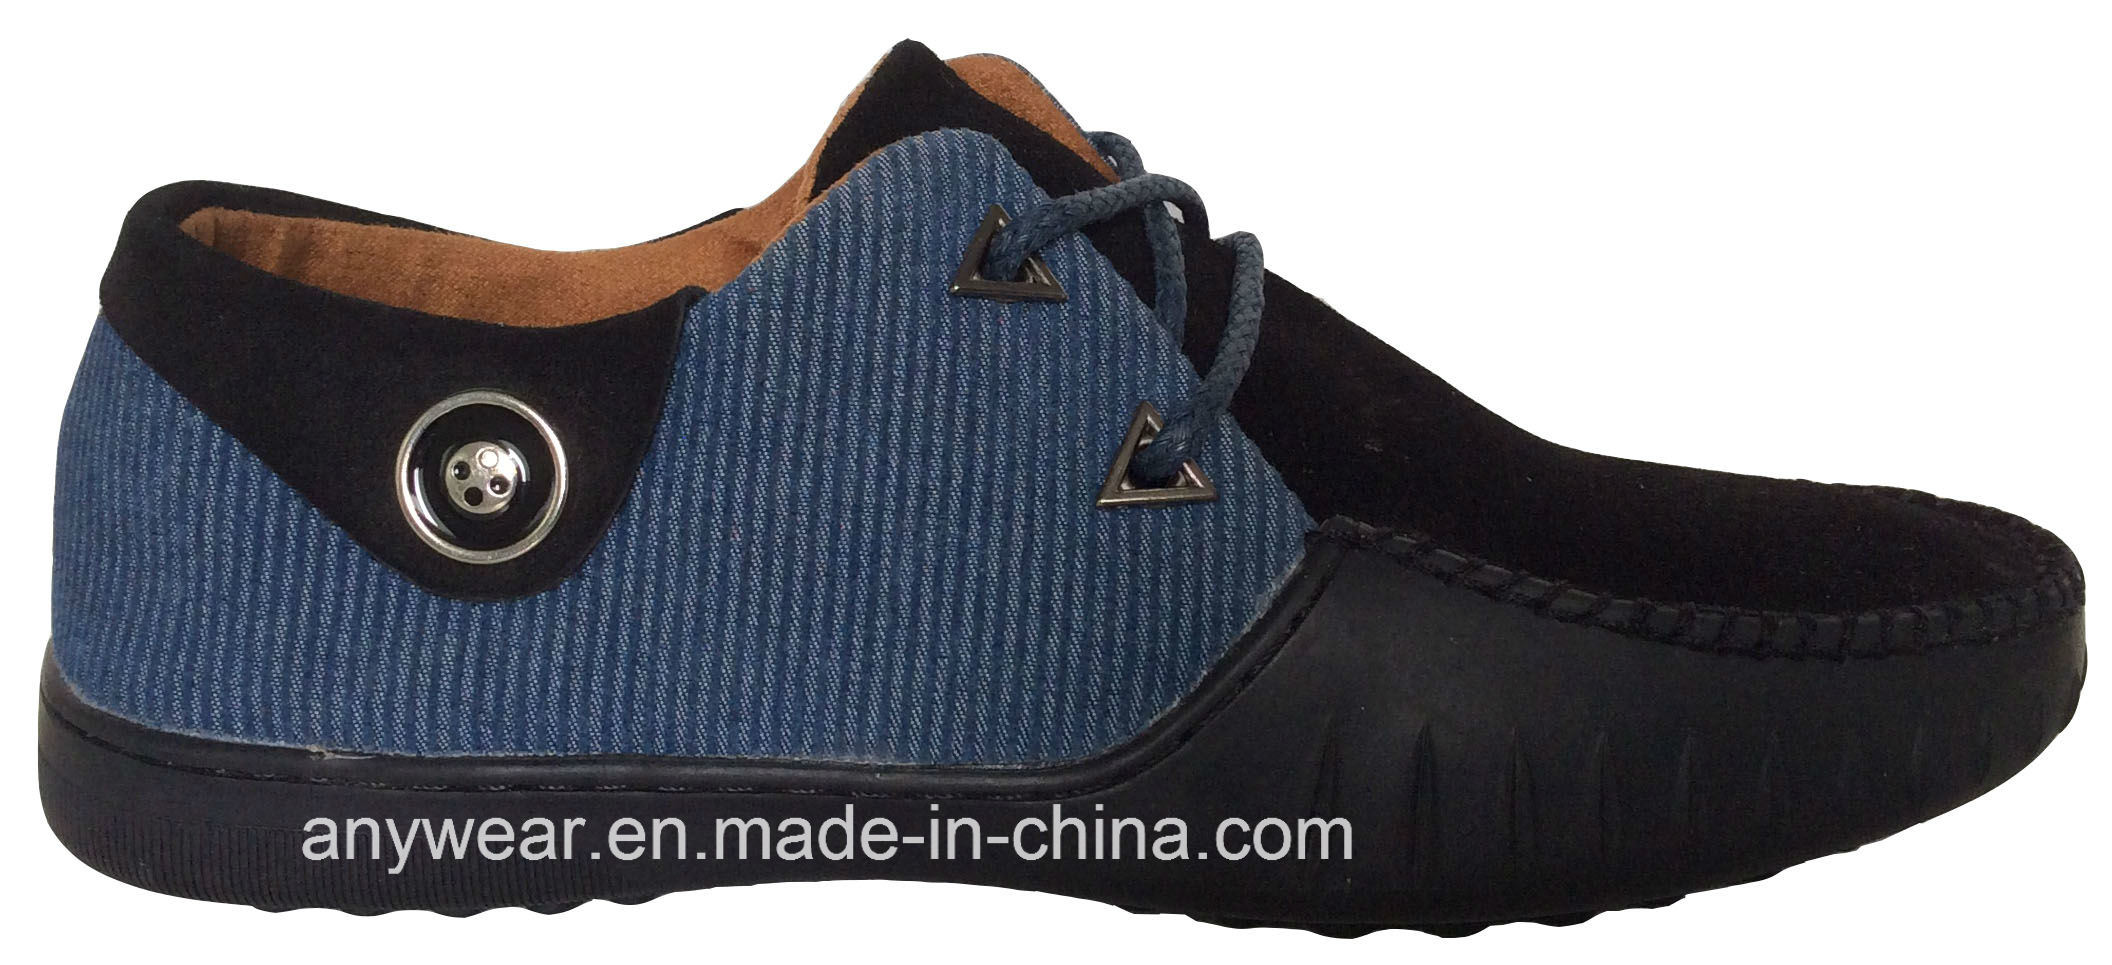 Leisure and Comfort Shoes for Men Leather Casual Footwear (815-9909)